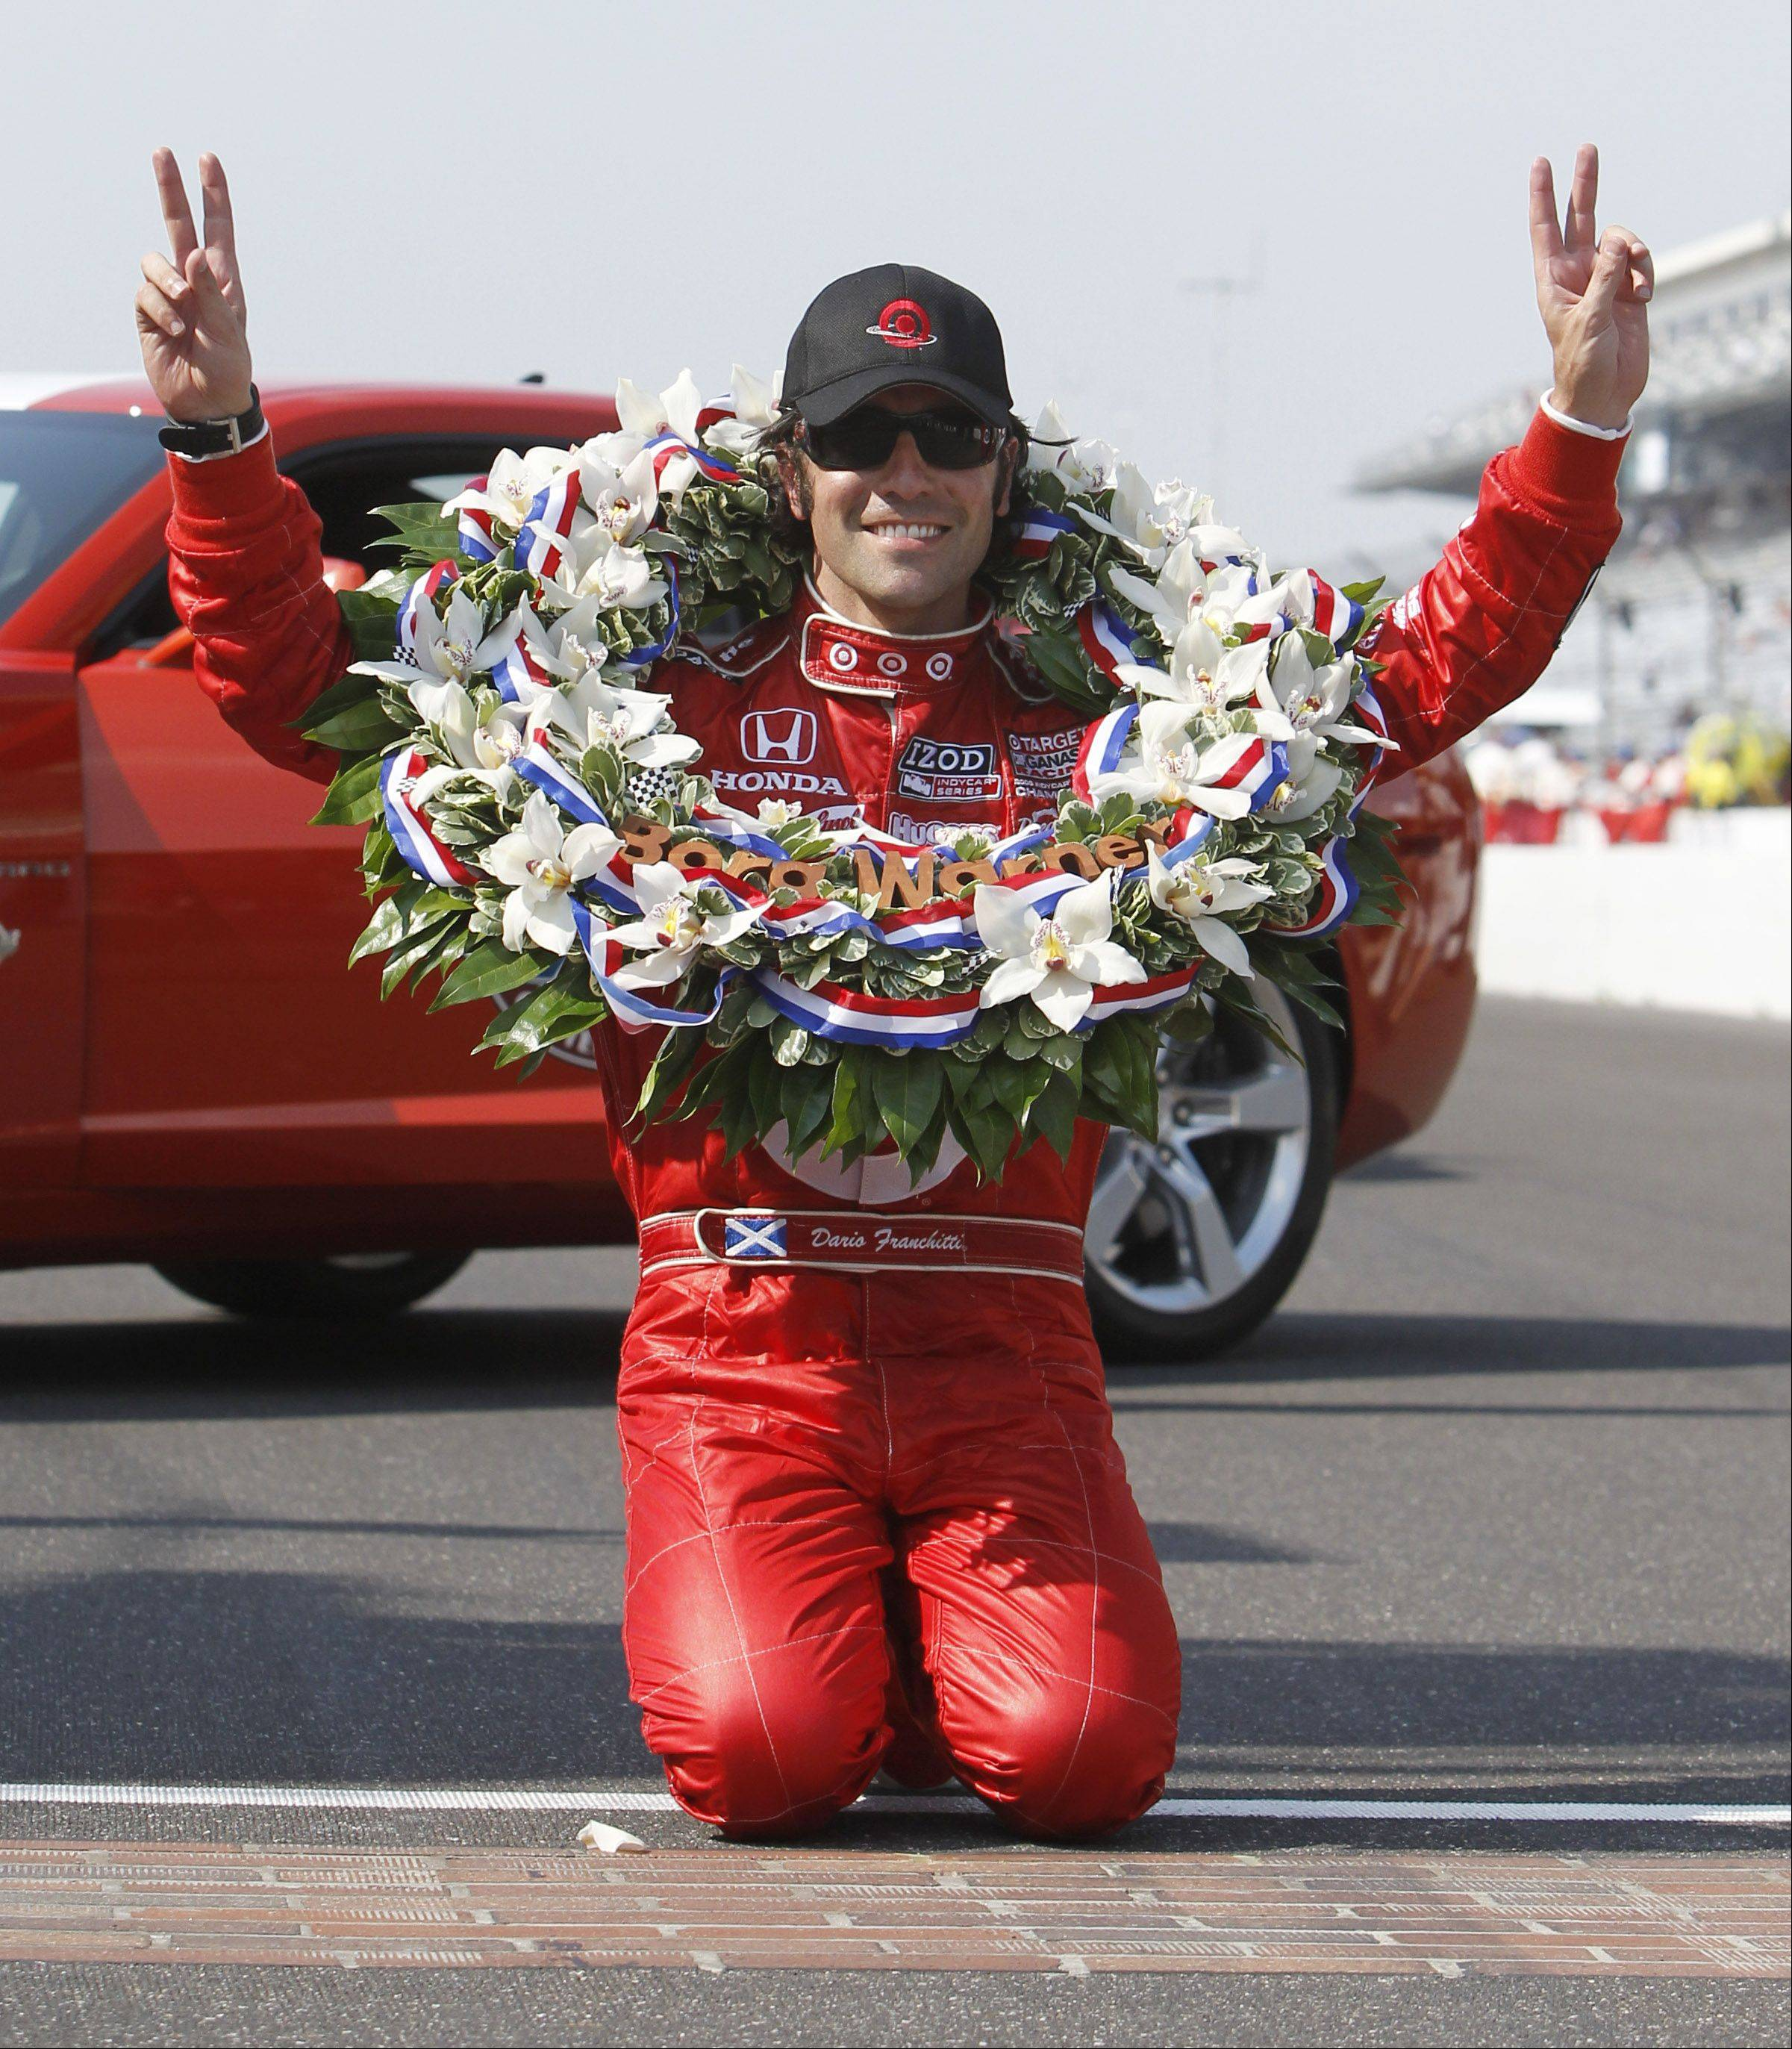 Dario Franchitti, of Scotland, celebrates at the start/finish line after winning the Indianapolis 500 auto race at the Indianapolis Motor Speedway in Indianapolis, Sunday, May 30, 2010. It was his second Indy 500 win.